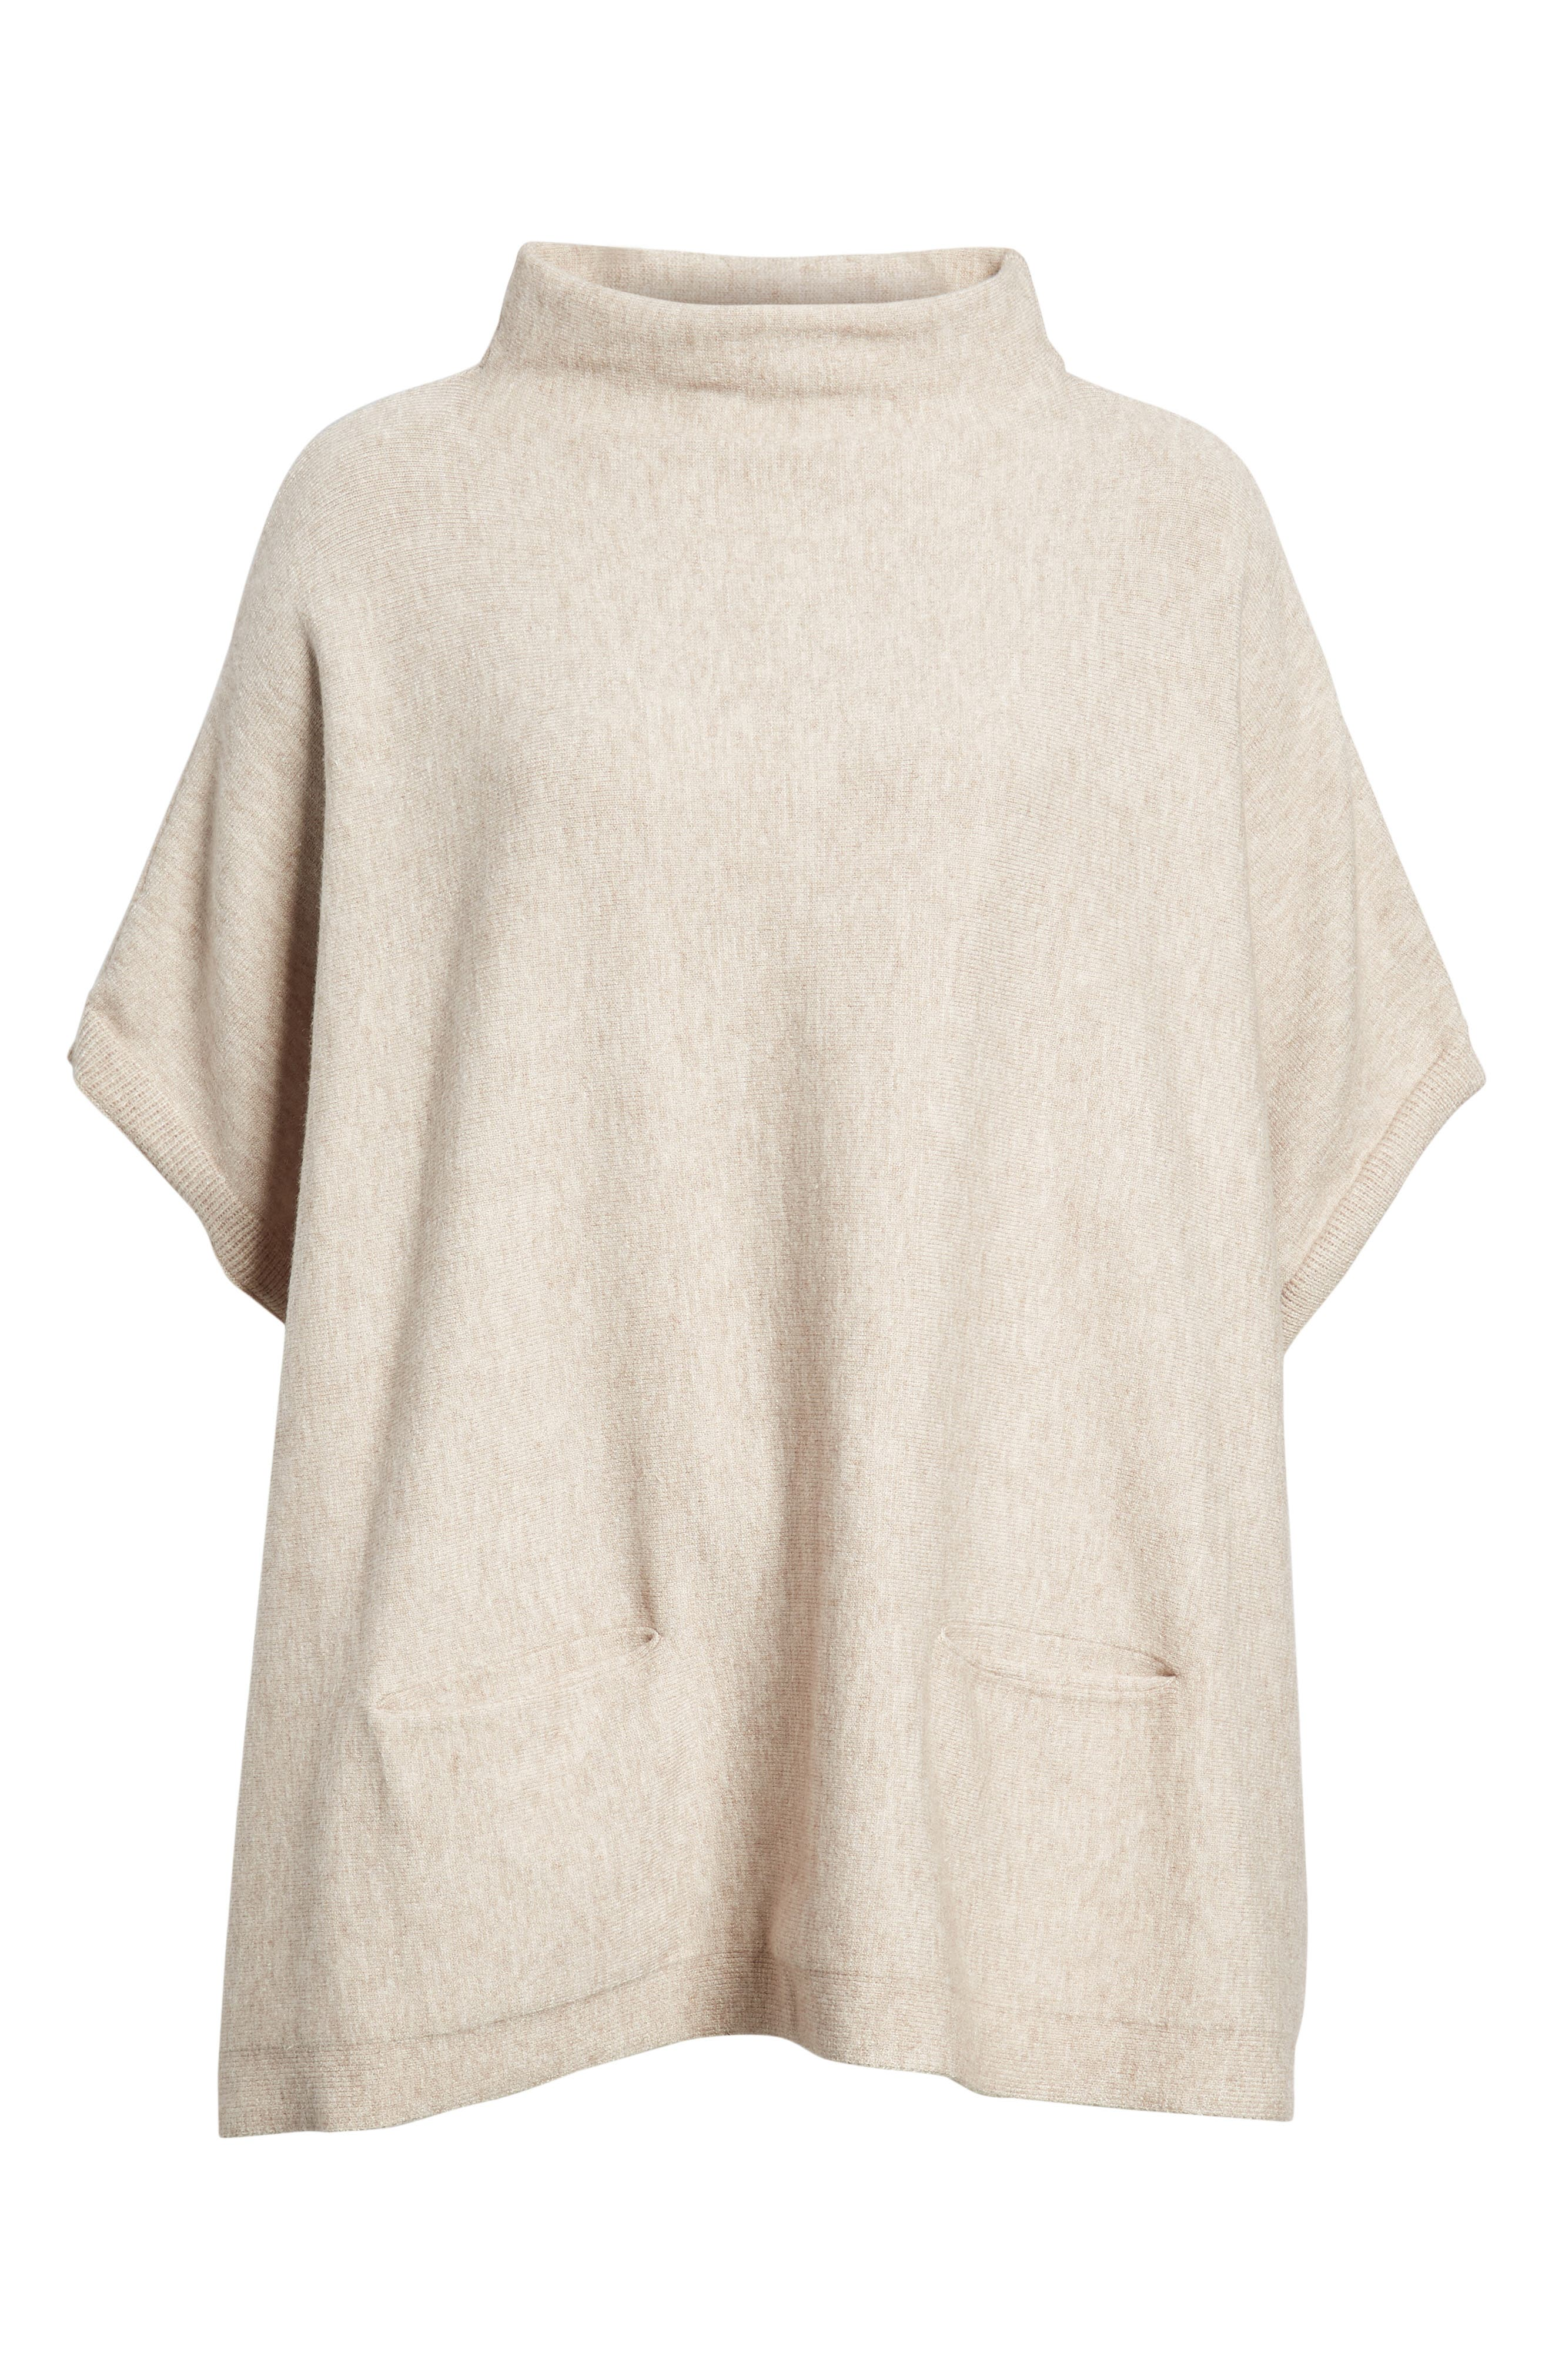 RD Style Boxy Pocket Sweater,                             Main thumbnail 1, color,                             Oatmeal